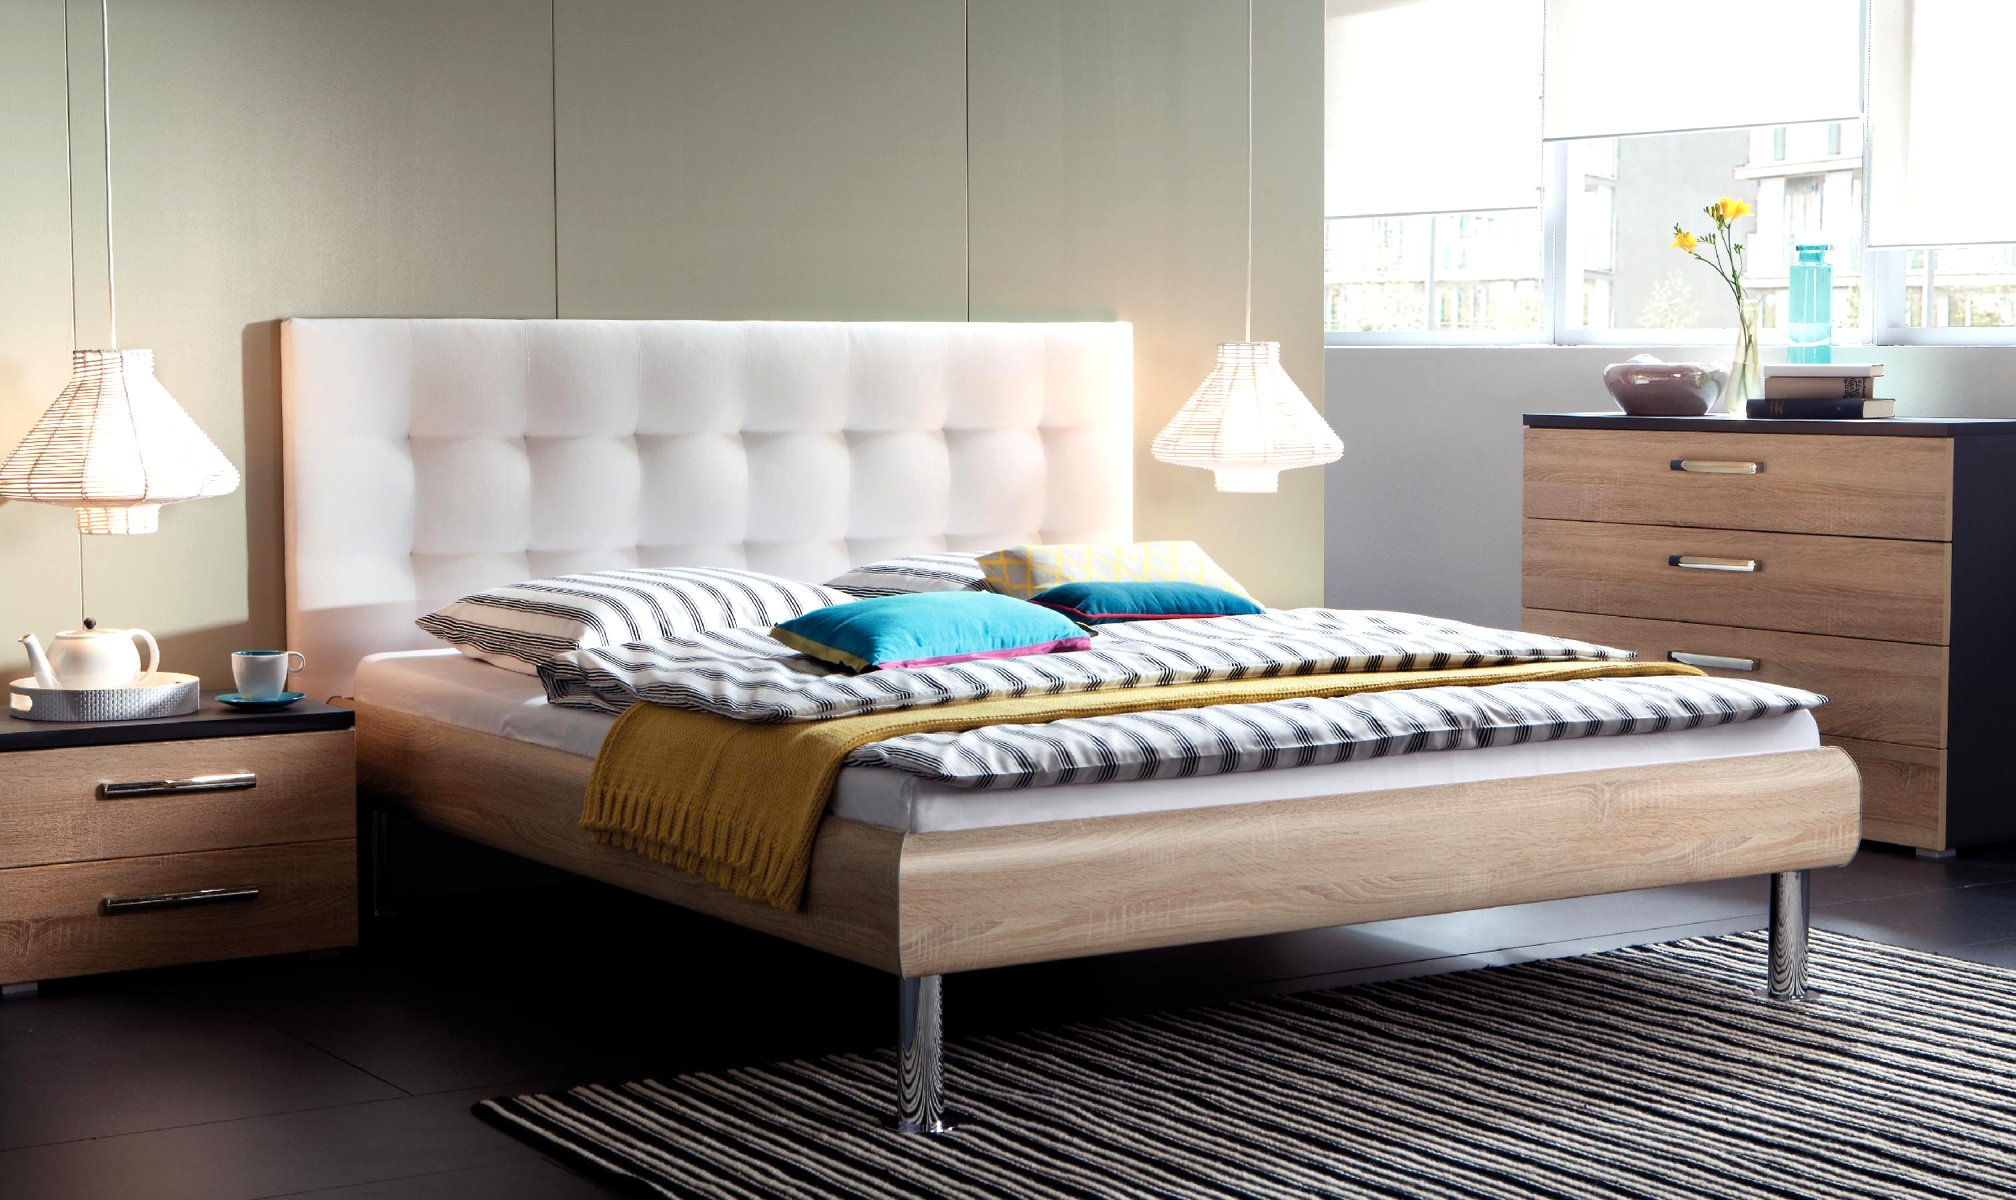 learn the truth about wasserbett xl bewertung in the next